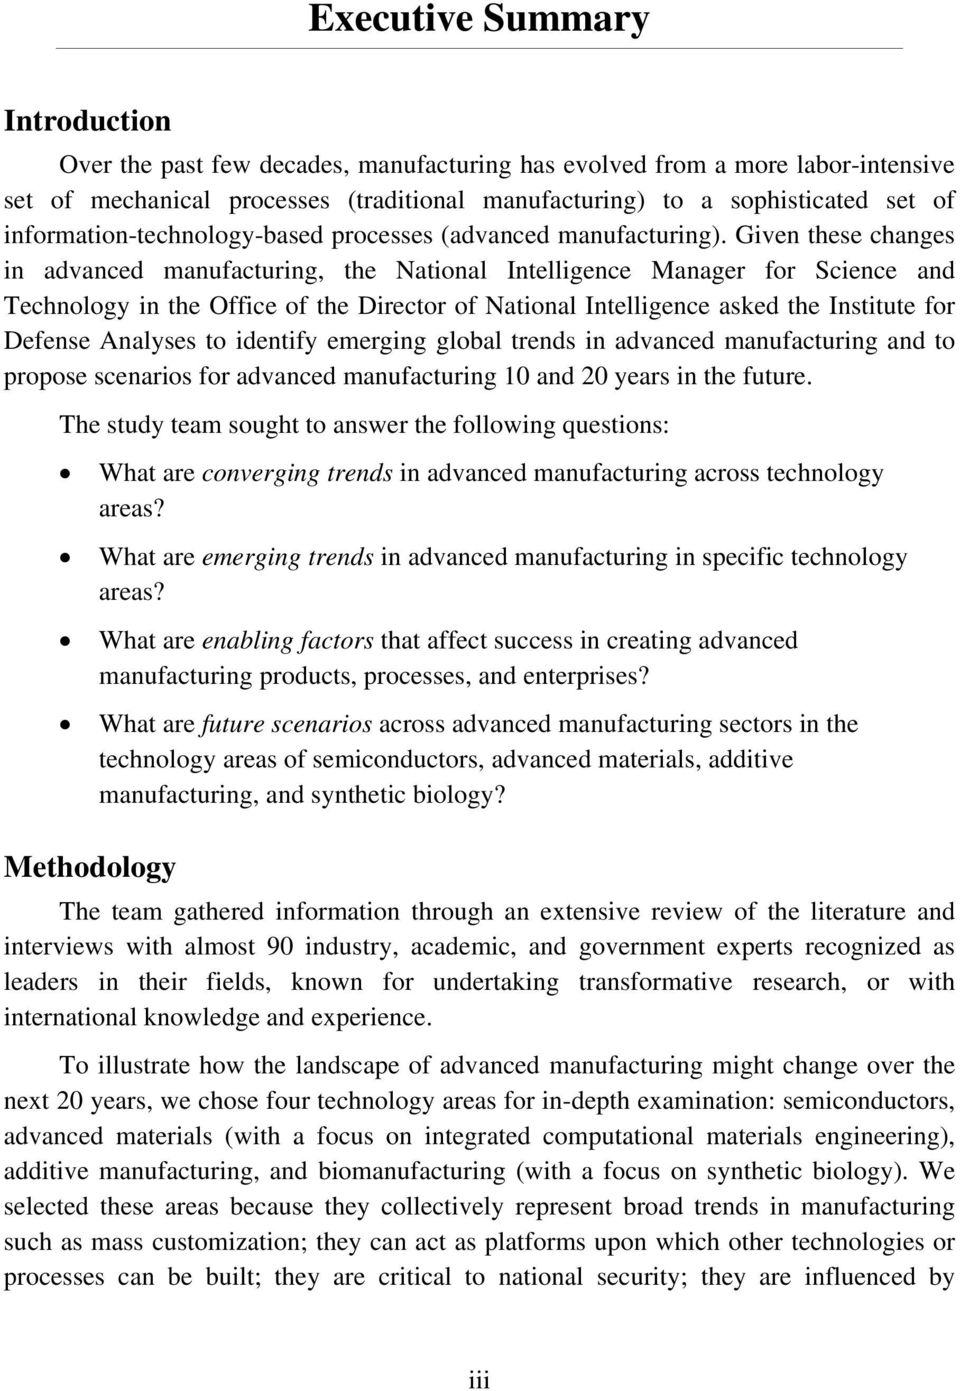 Given these changes in advanced manufacturing, the National Intelligence Manager for Science and Technology in the Office of the Director of National Intelligence asked the Institute for Defense